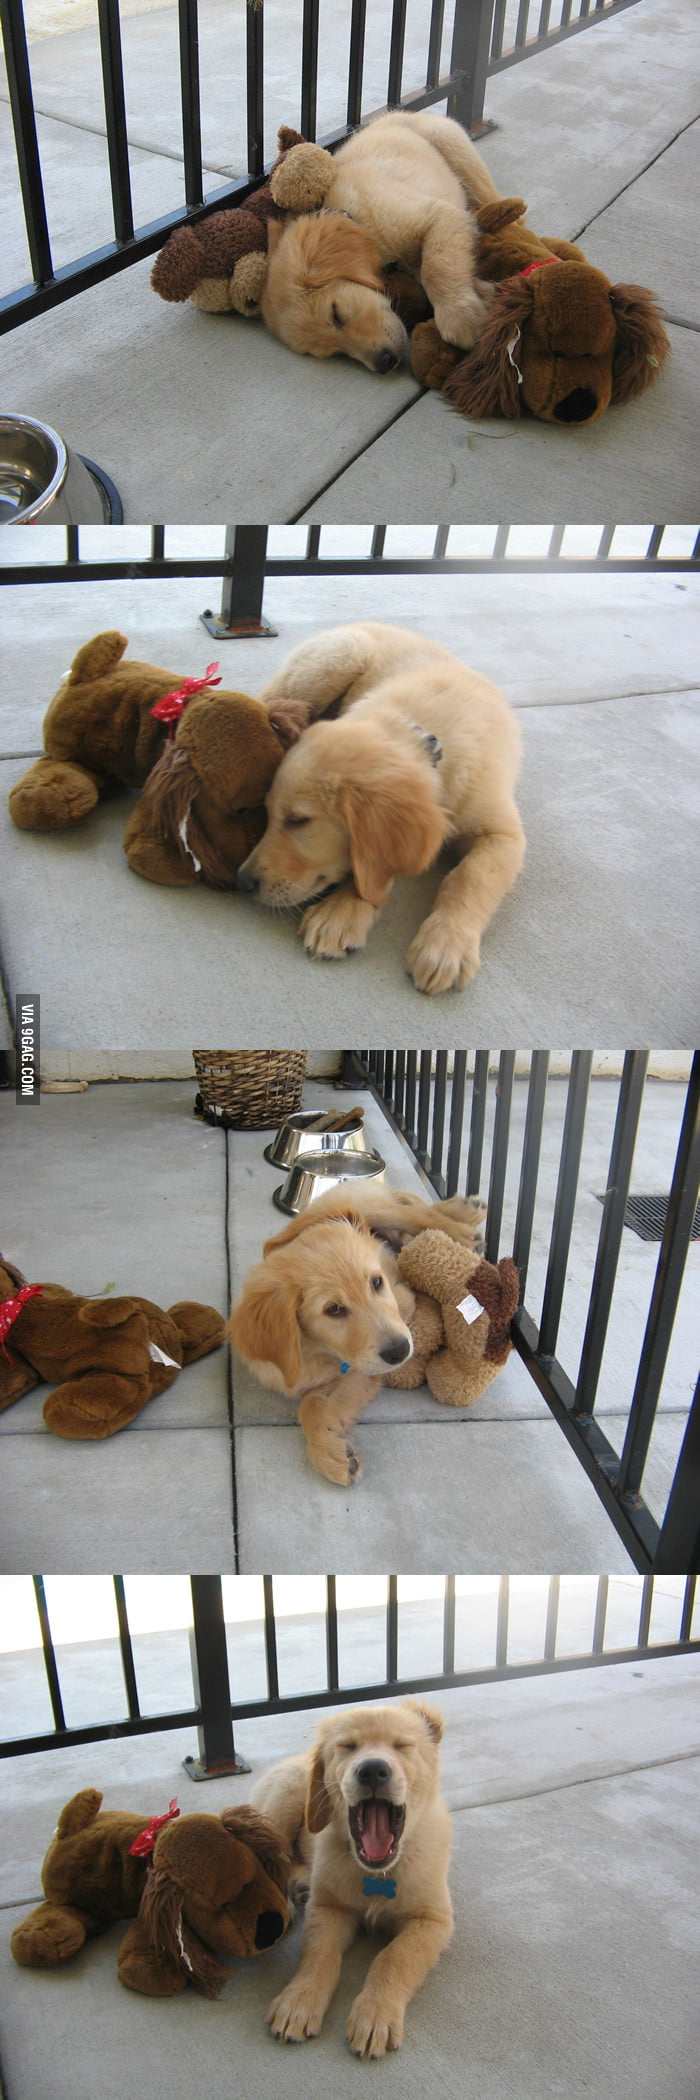 Golden puppy and his best friend.